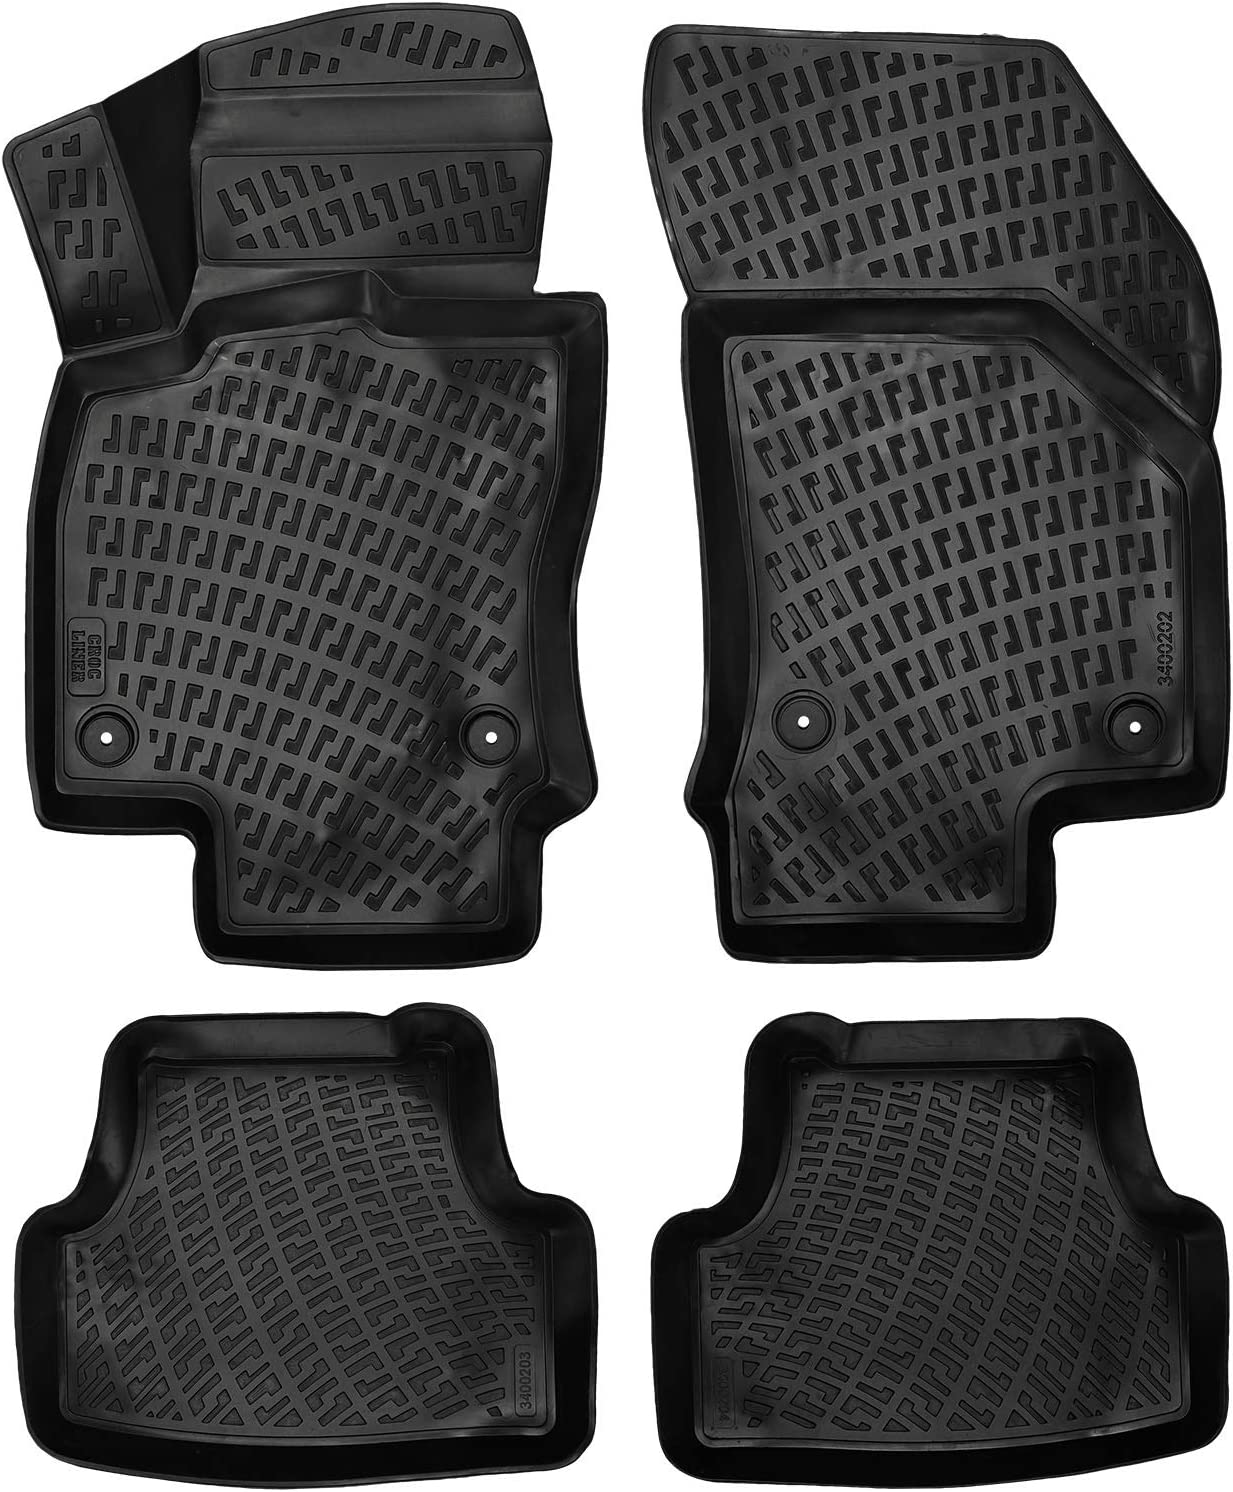 AWEMAT for Honda Civic 2016-present Model Digital Measured Exquisite Pattern Custom Fit Car Floor Mats for-Large Coverage Waterproof-All Weather Protection-Black